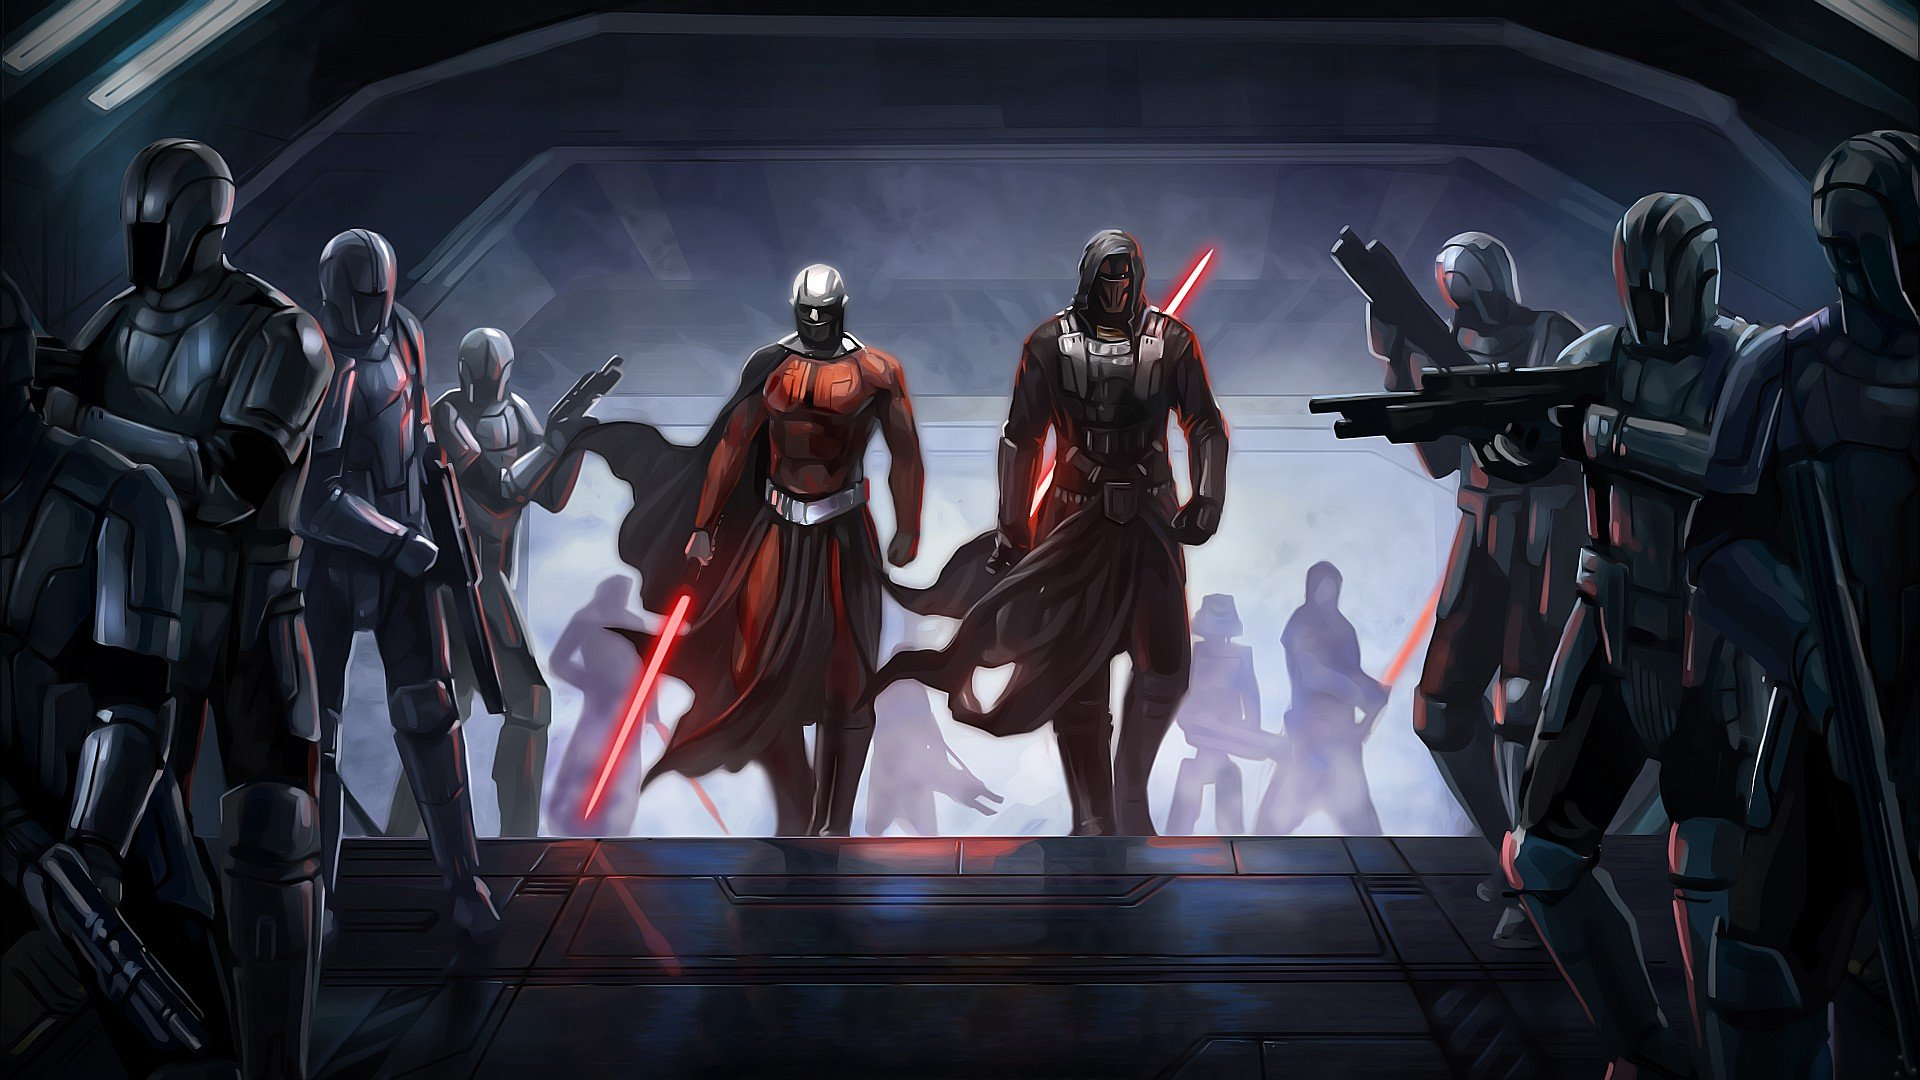 Free Download 149 Star Wars Wallpapers Everything From Games To Comics To 1920x1080 For Your Desktop Mobile Tablet Explore 50 Imgur Star Wars Wallpapers Star Wars Finn Wallpaper Star